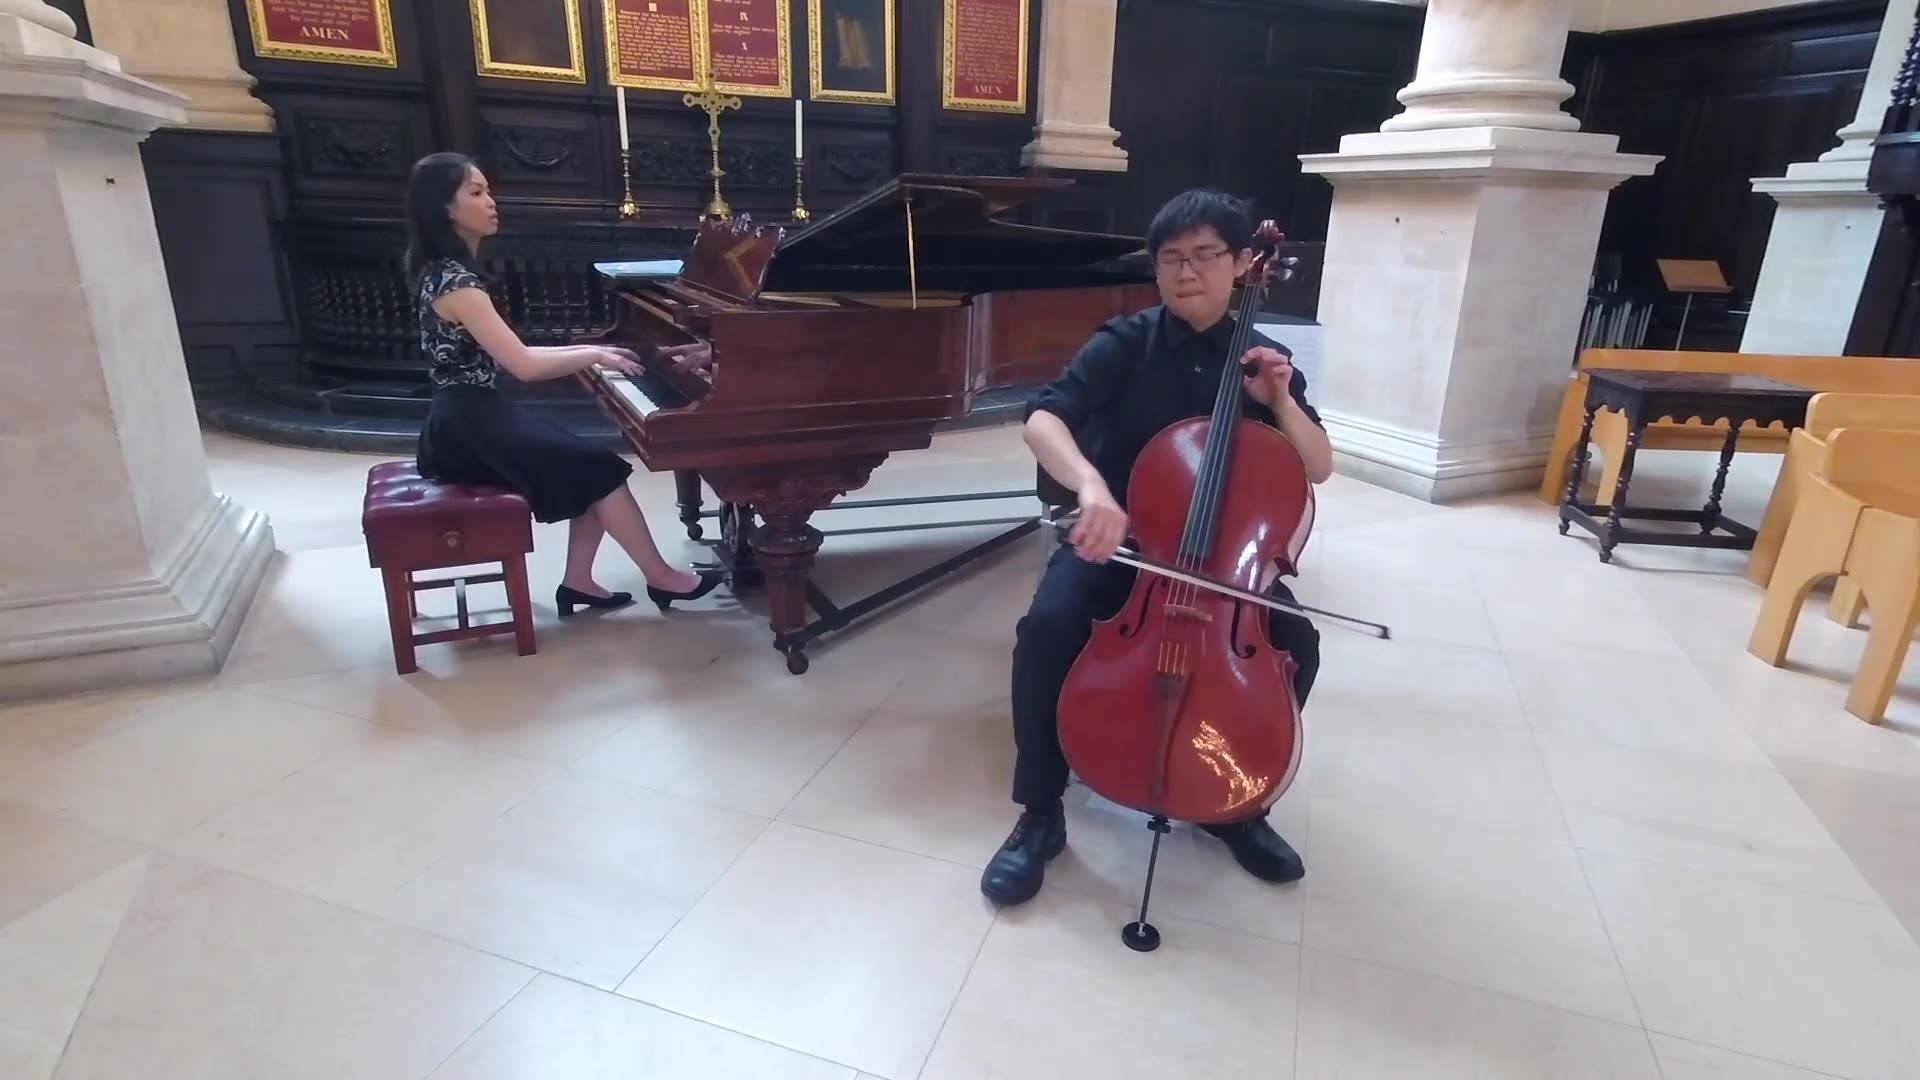 Jam with no planning at all as an encore after the Franck sonata with Constance at St Stephen Walbrook on Tuesday, probably my last performance in central London before moving back to HK soon.  星期二音樂會的即興Encore, please feel free to share ;)  Somewhere